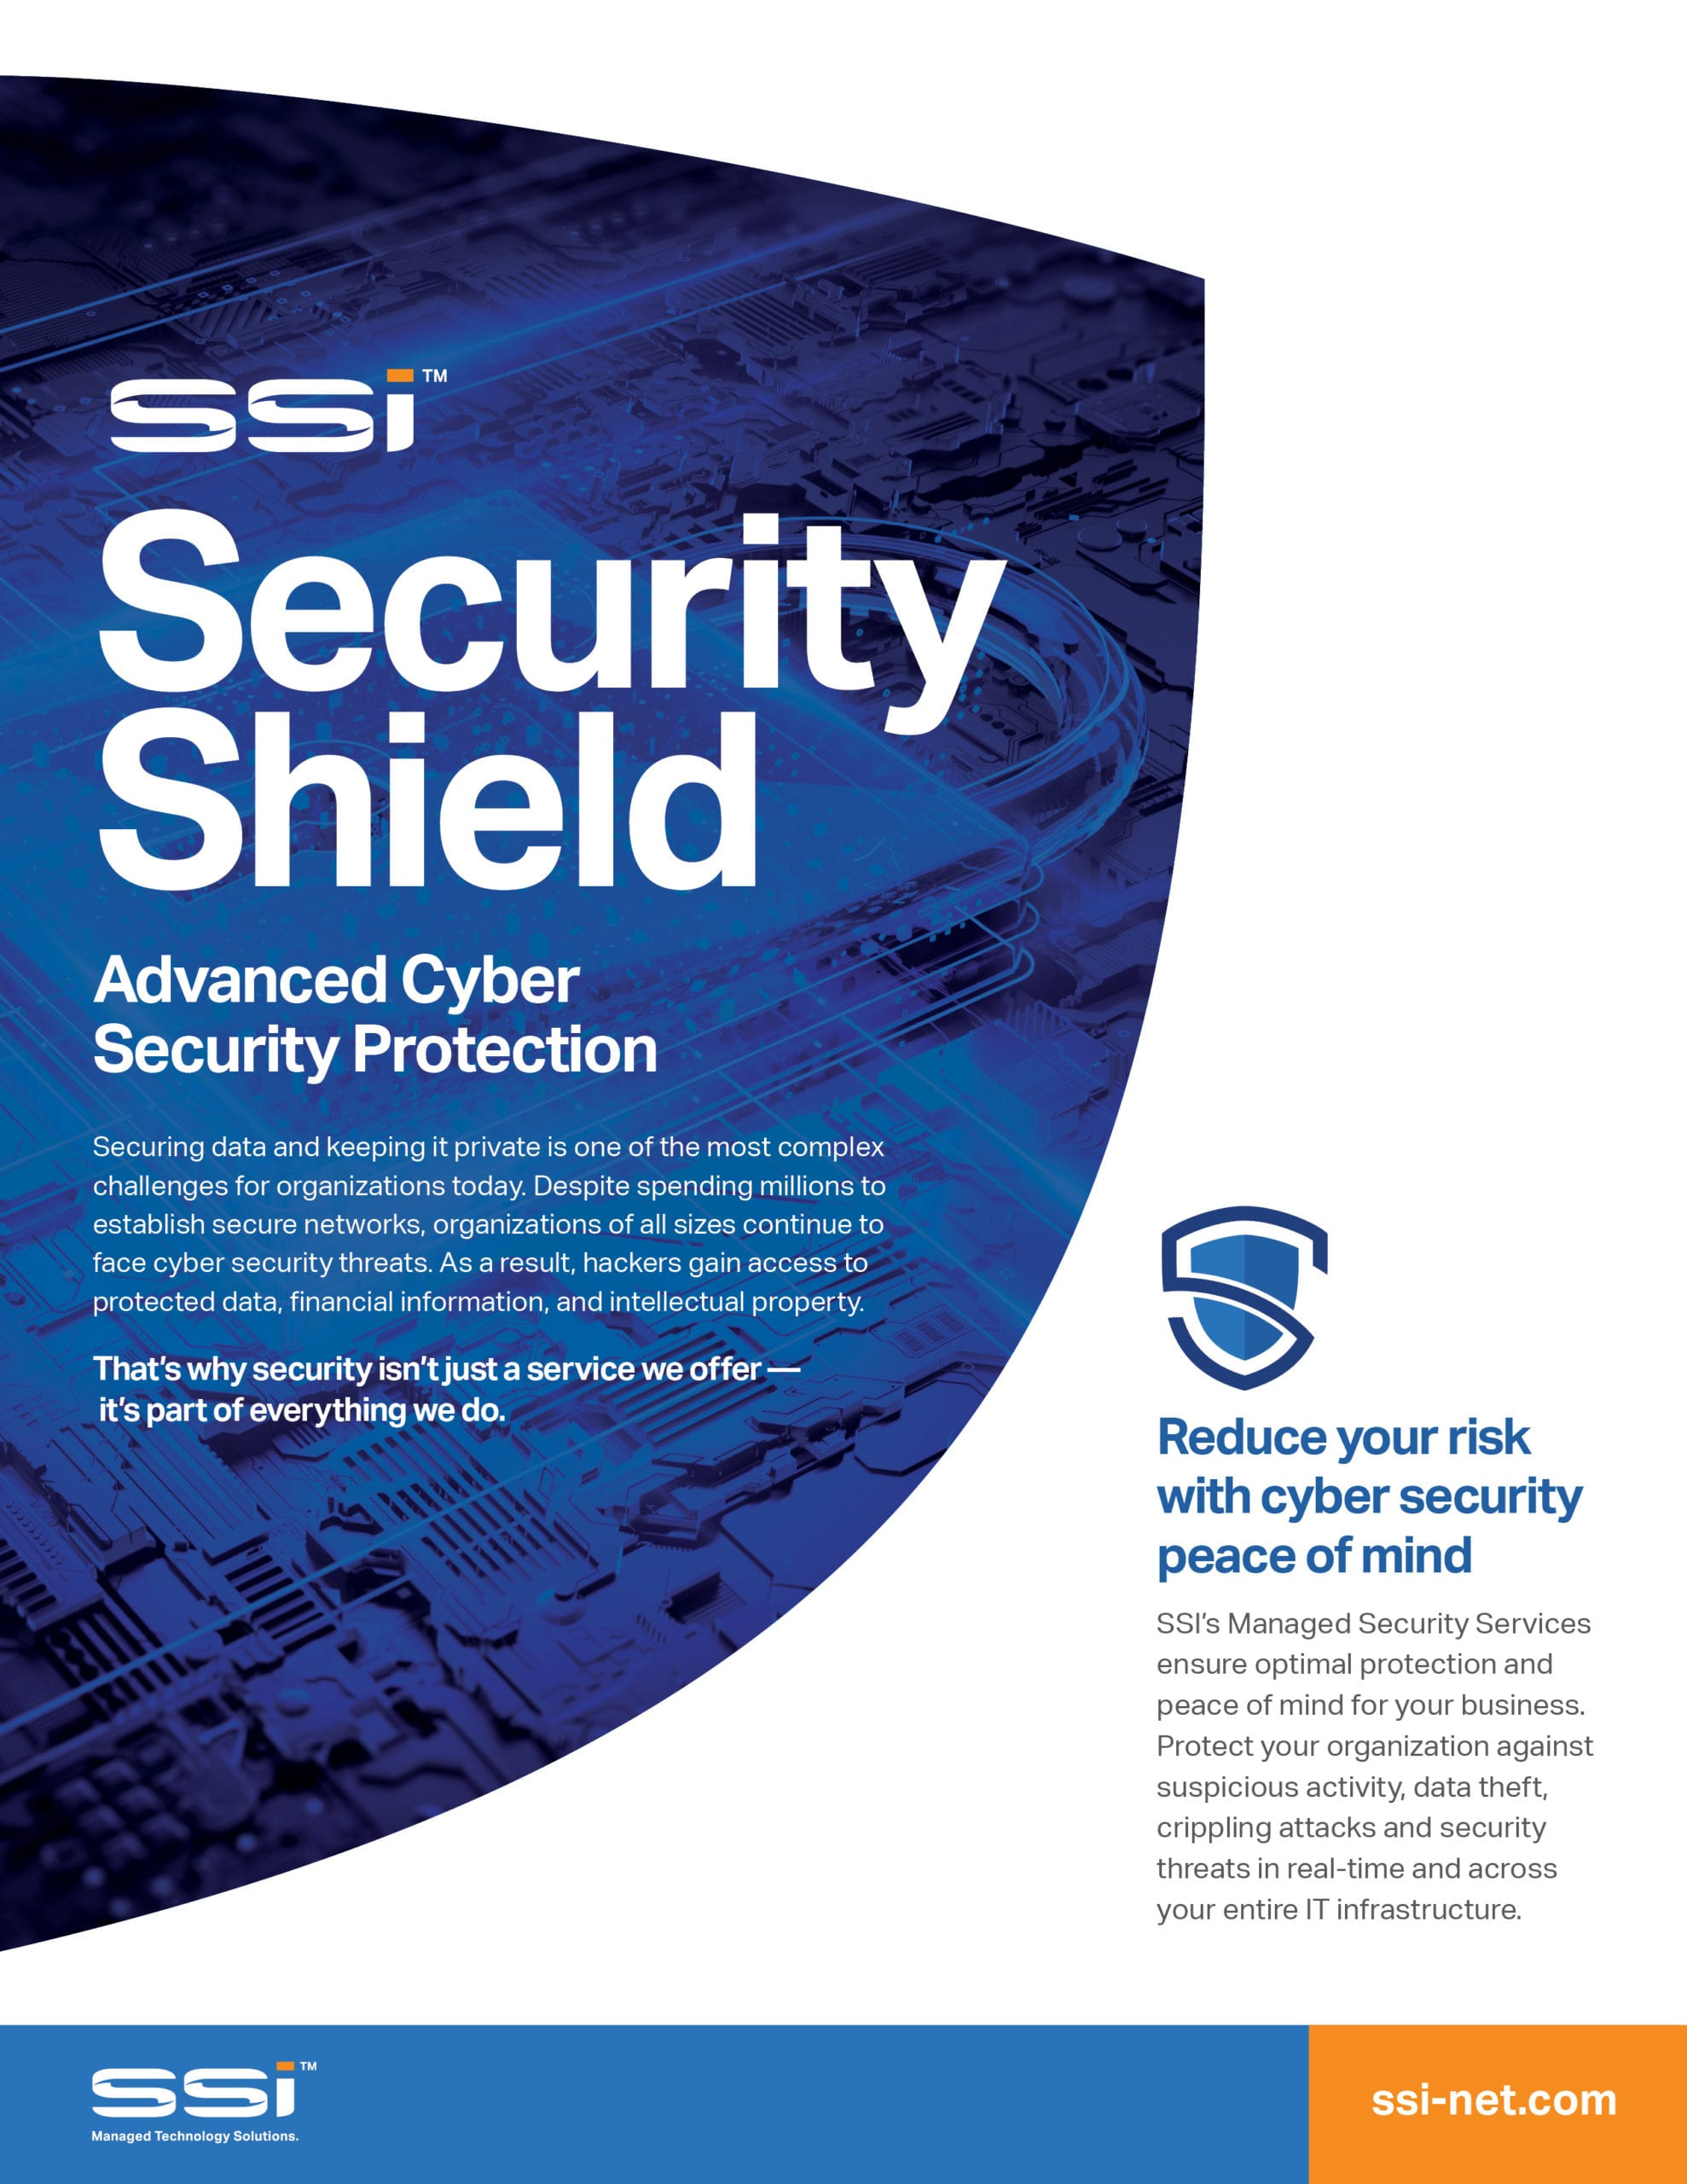 Download SSI's Security Shield Datasheet